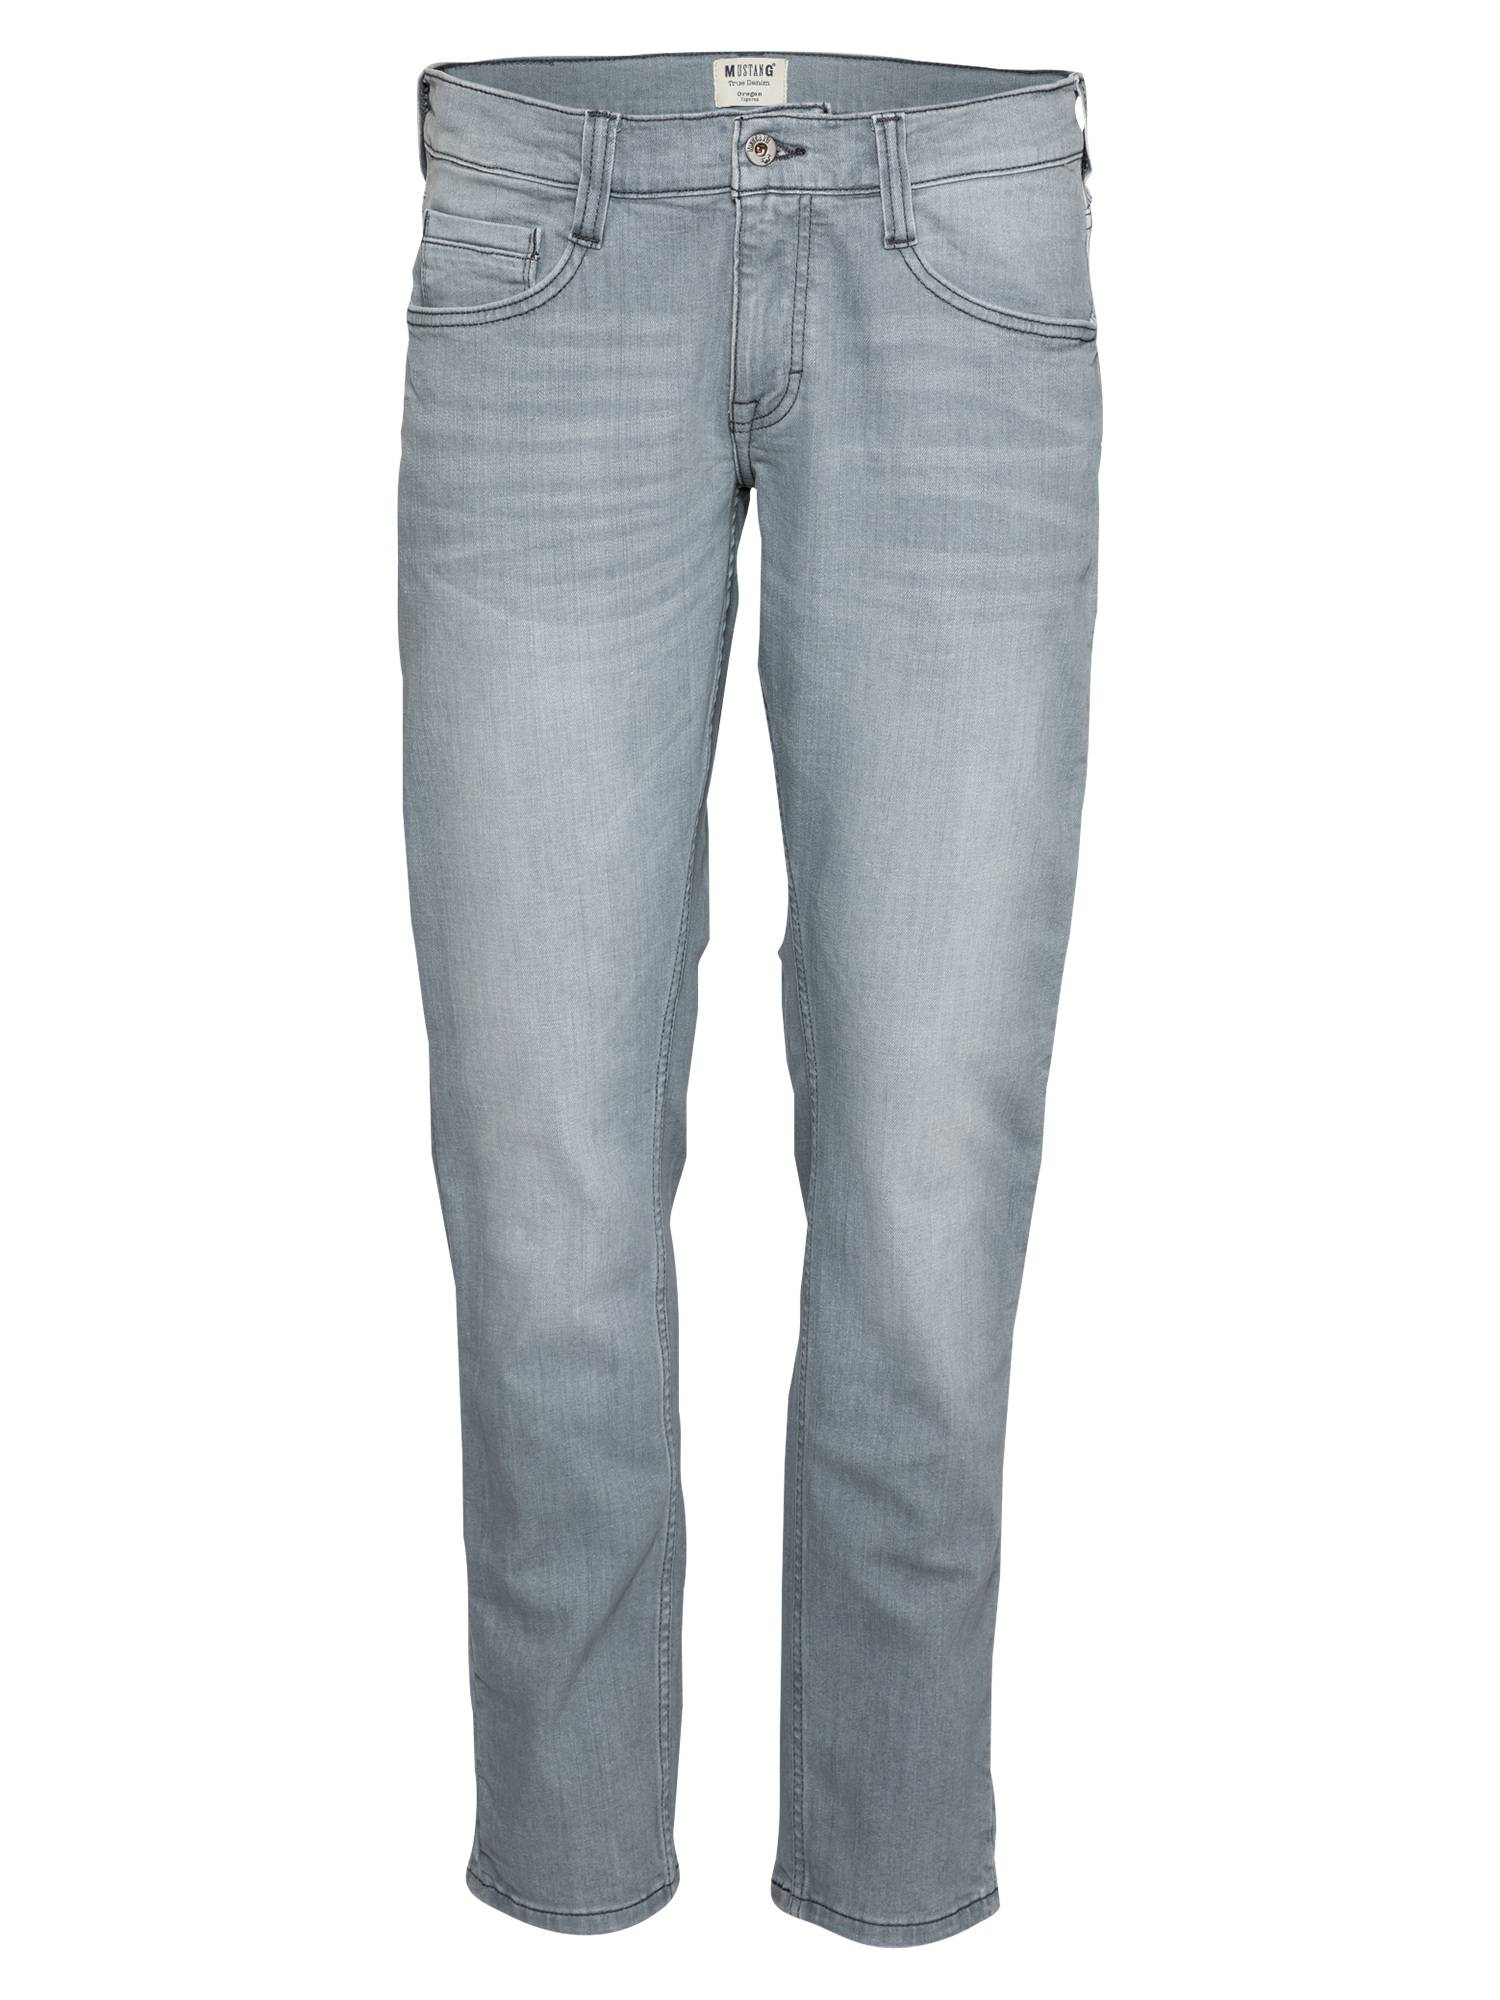 MUSTANG Jean 'Oregon'  - Gris - Taille: 31/32 - male